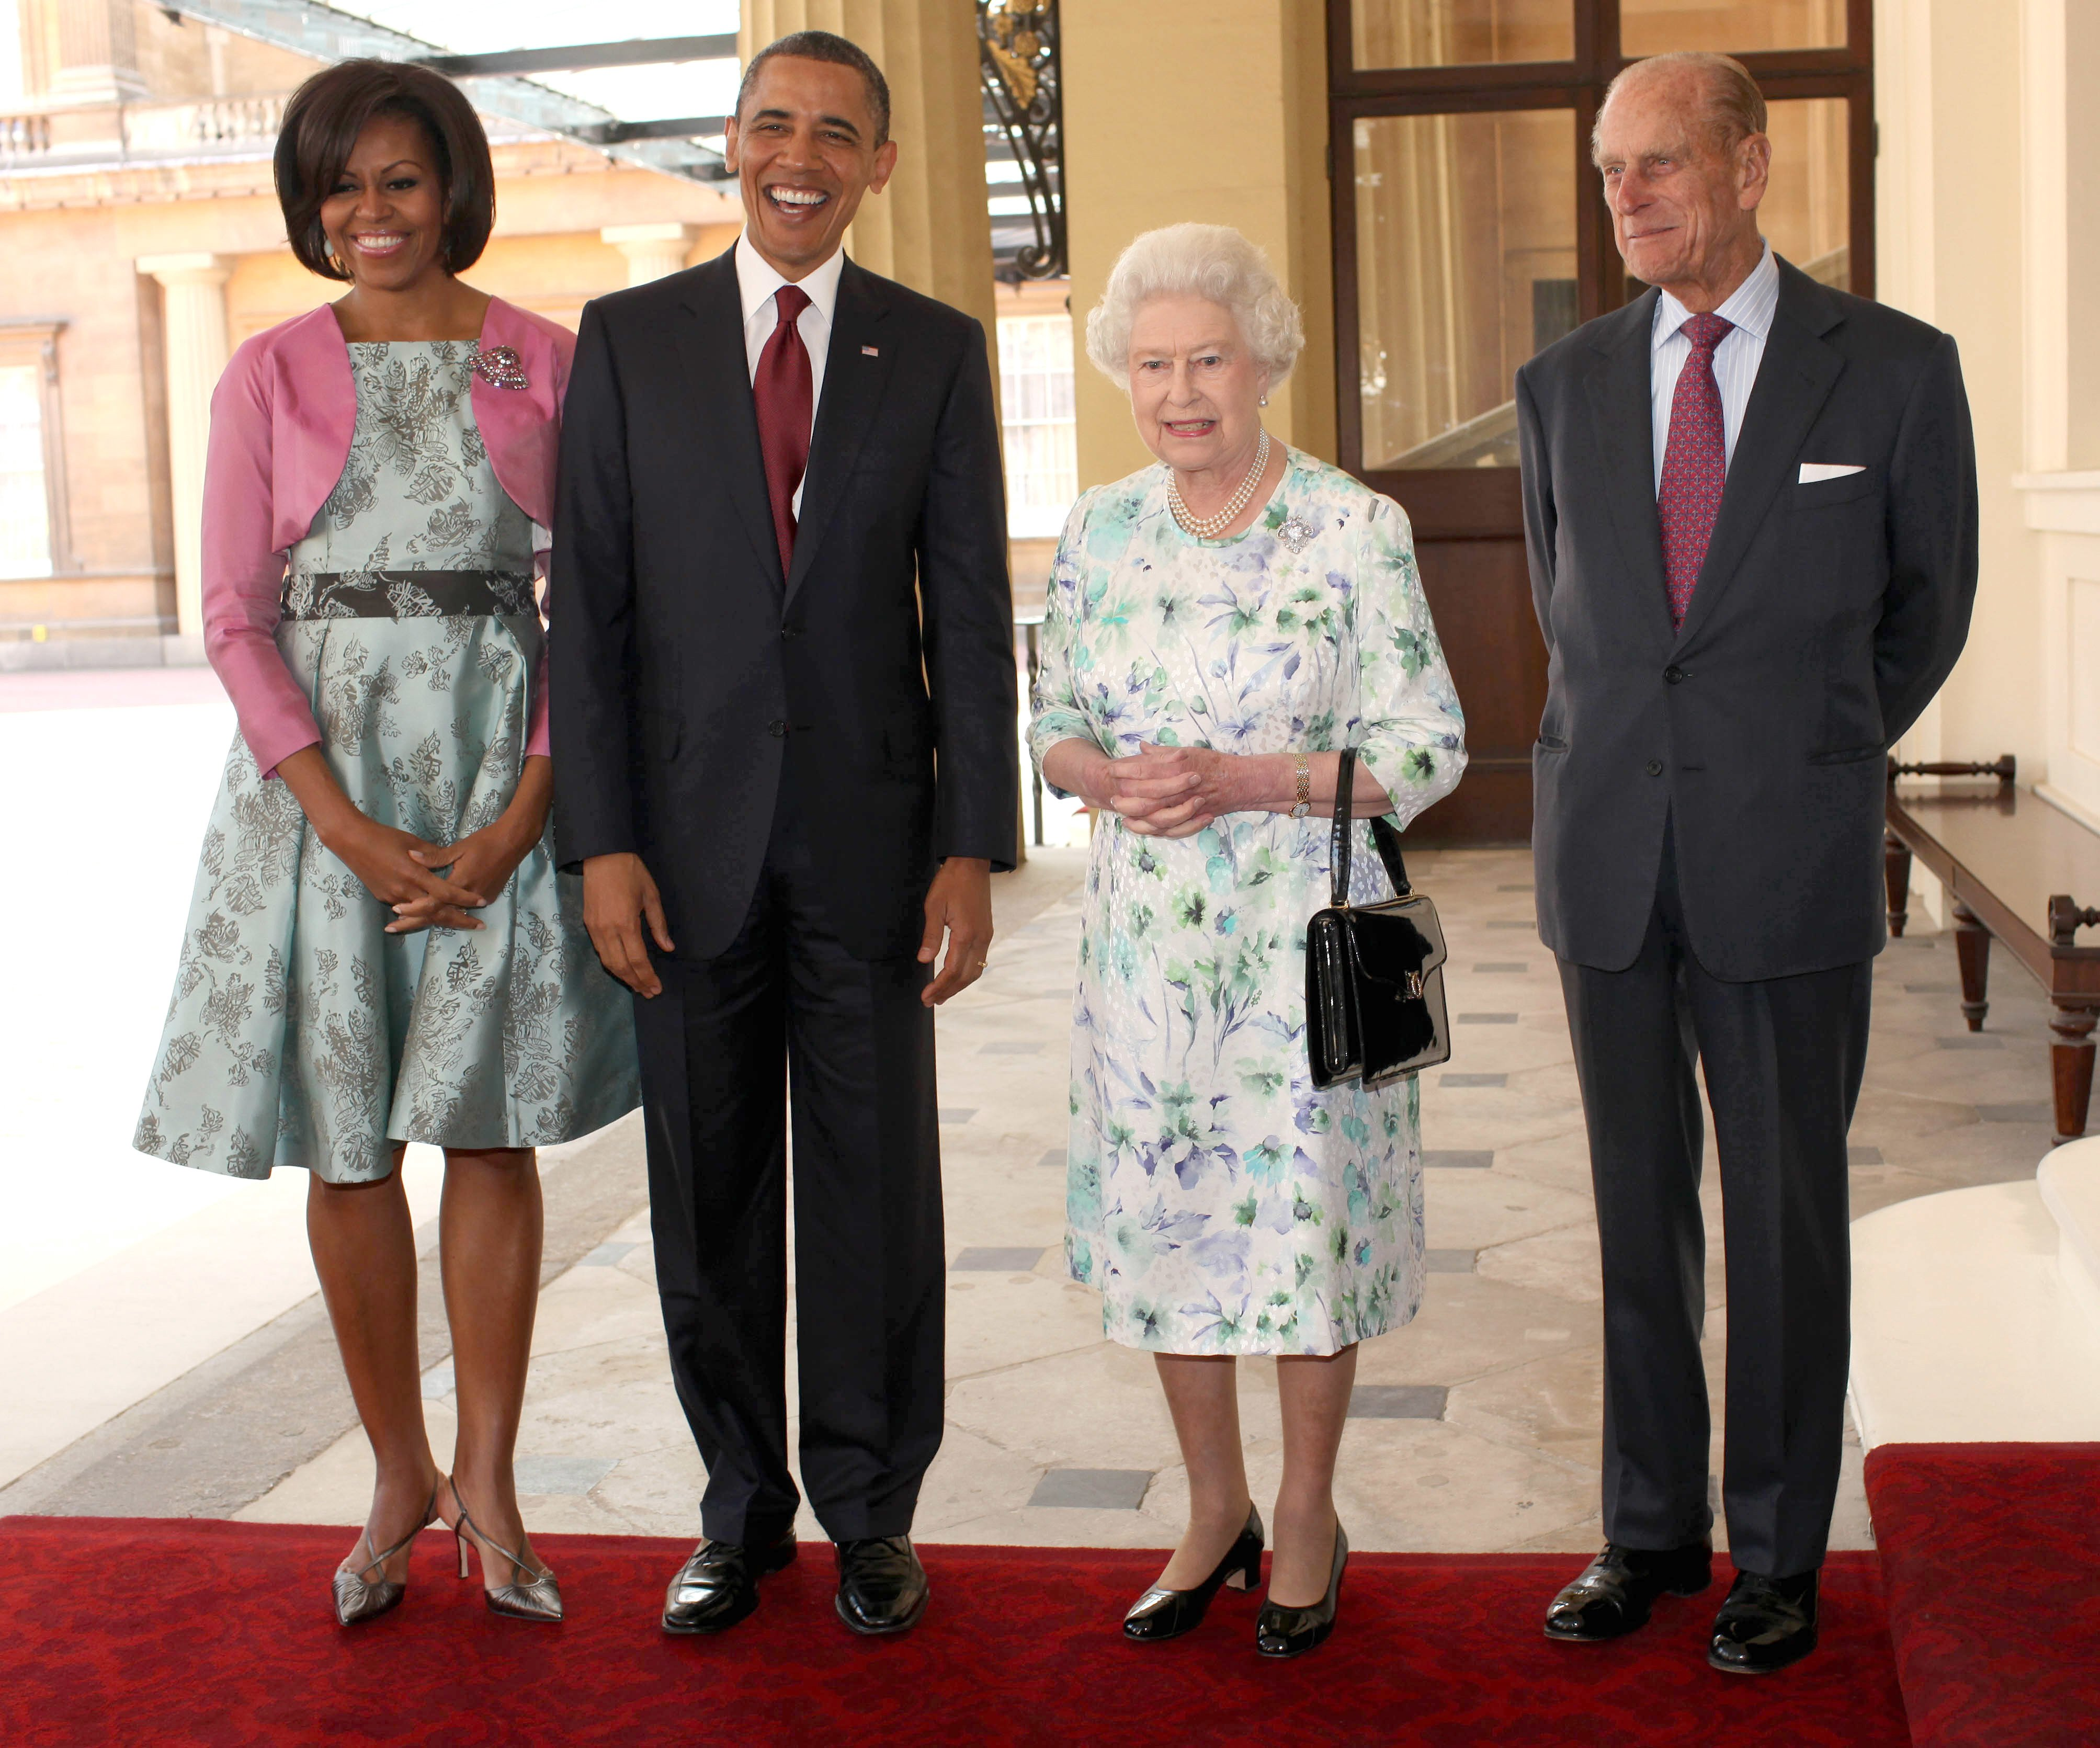 Former President Barack Obama, Michelle Obama, Queen Elizabeth II and Prince Philip, pose for a photograph at Buckingham Palace on May 24, 2011 in London, England. | Photo: Getty Images